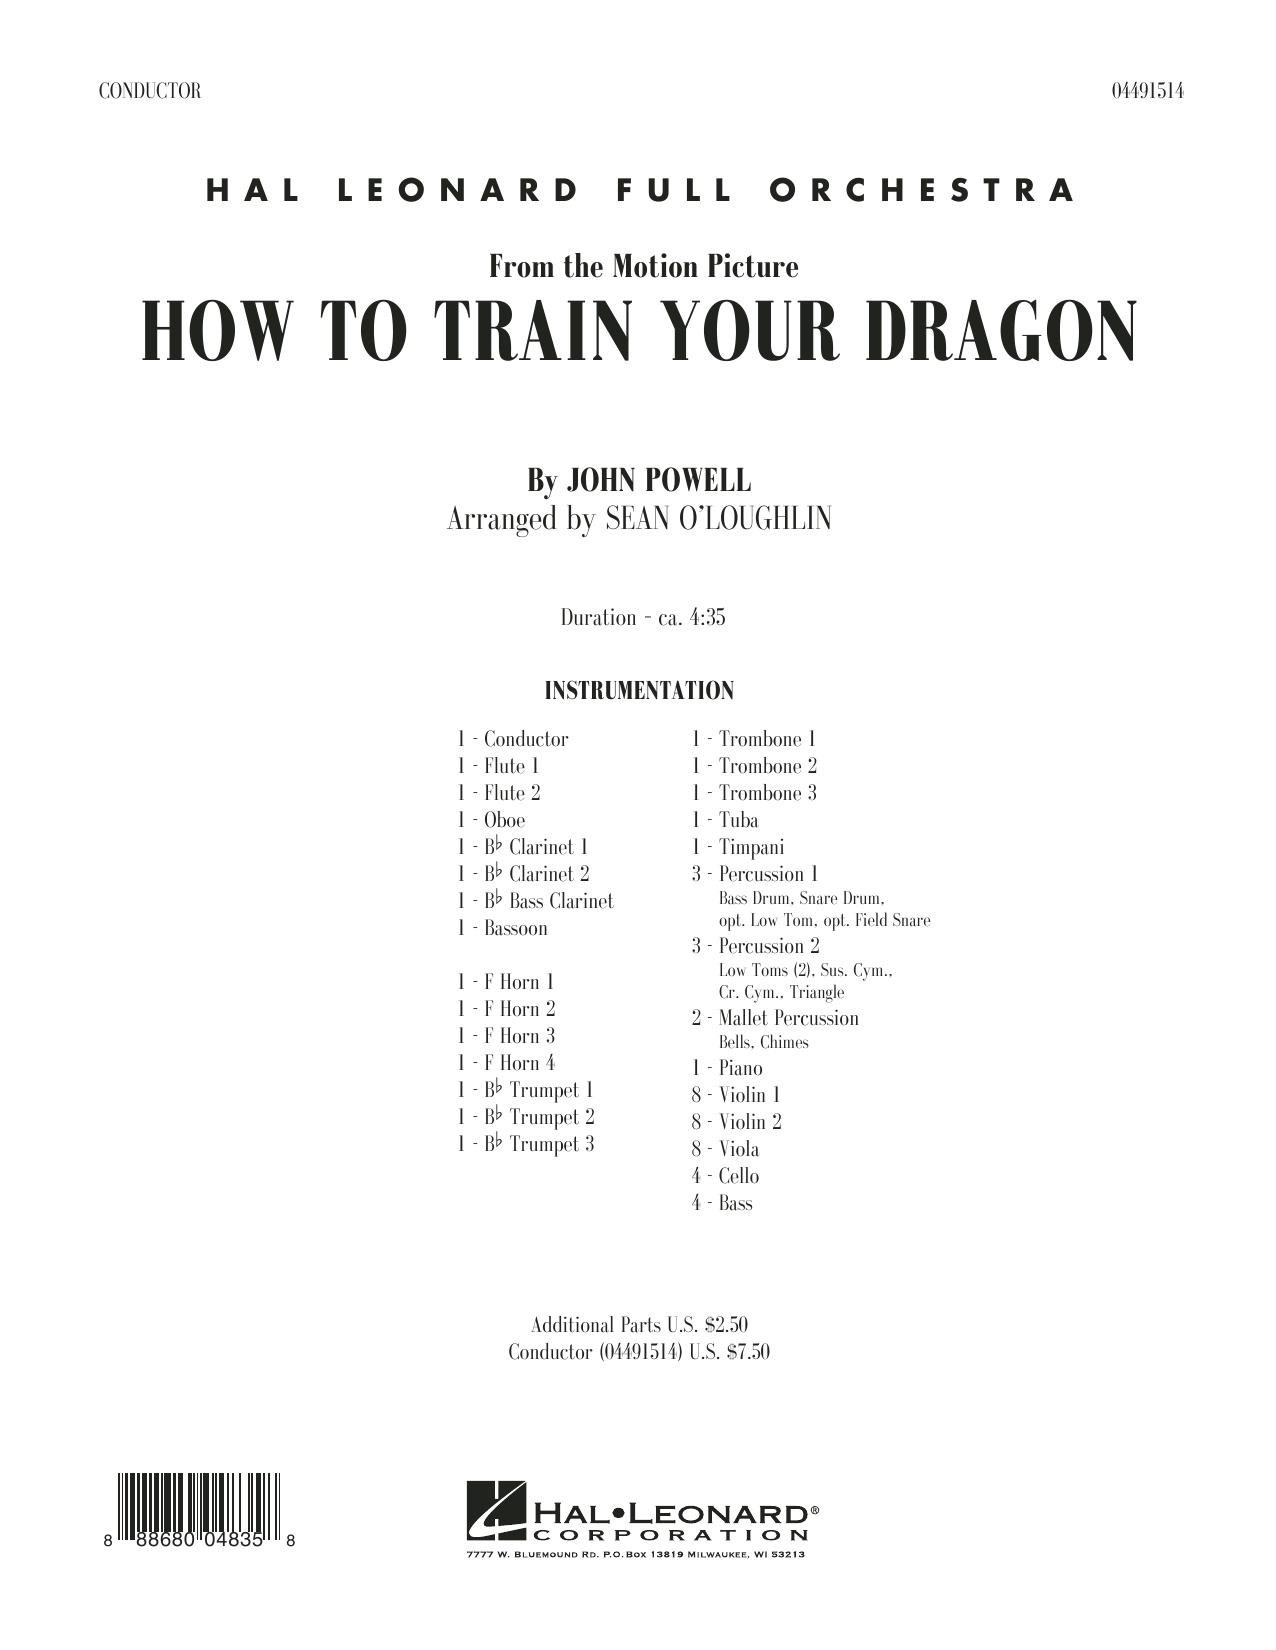 How to Train Your Dragon (COMPLETE) sheet music for full orchestra by Sean O'Loughlin